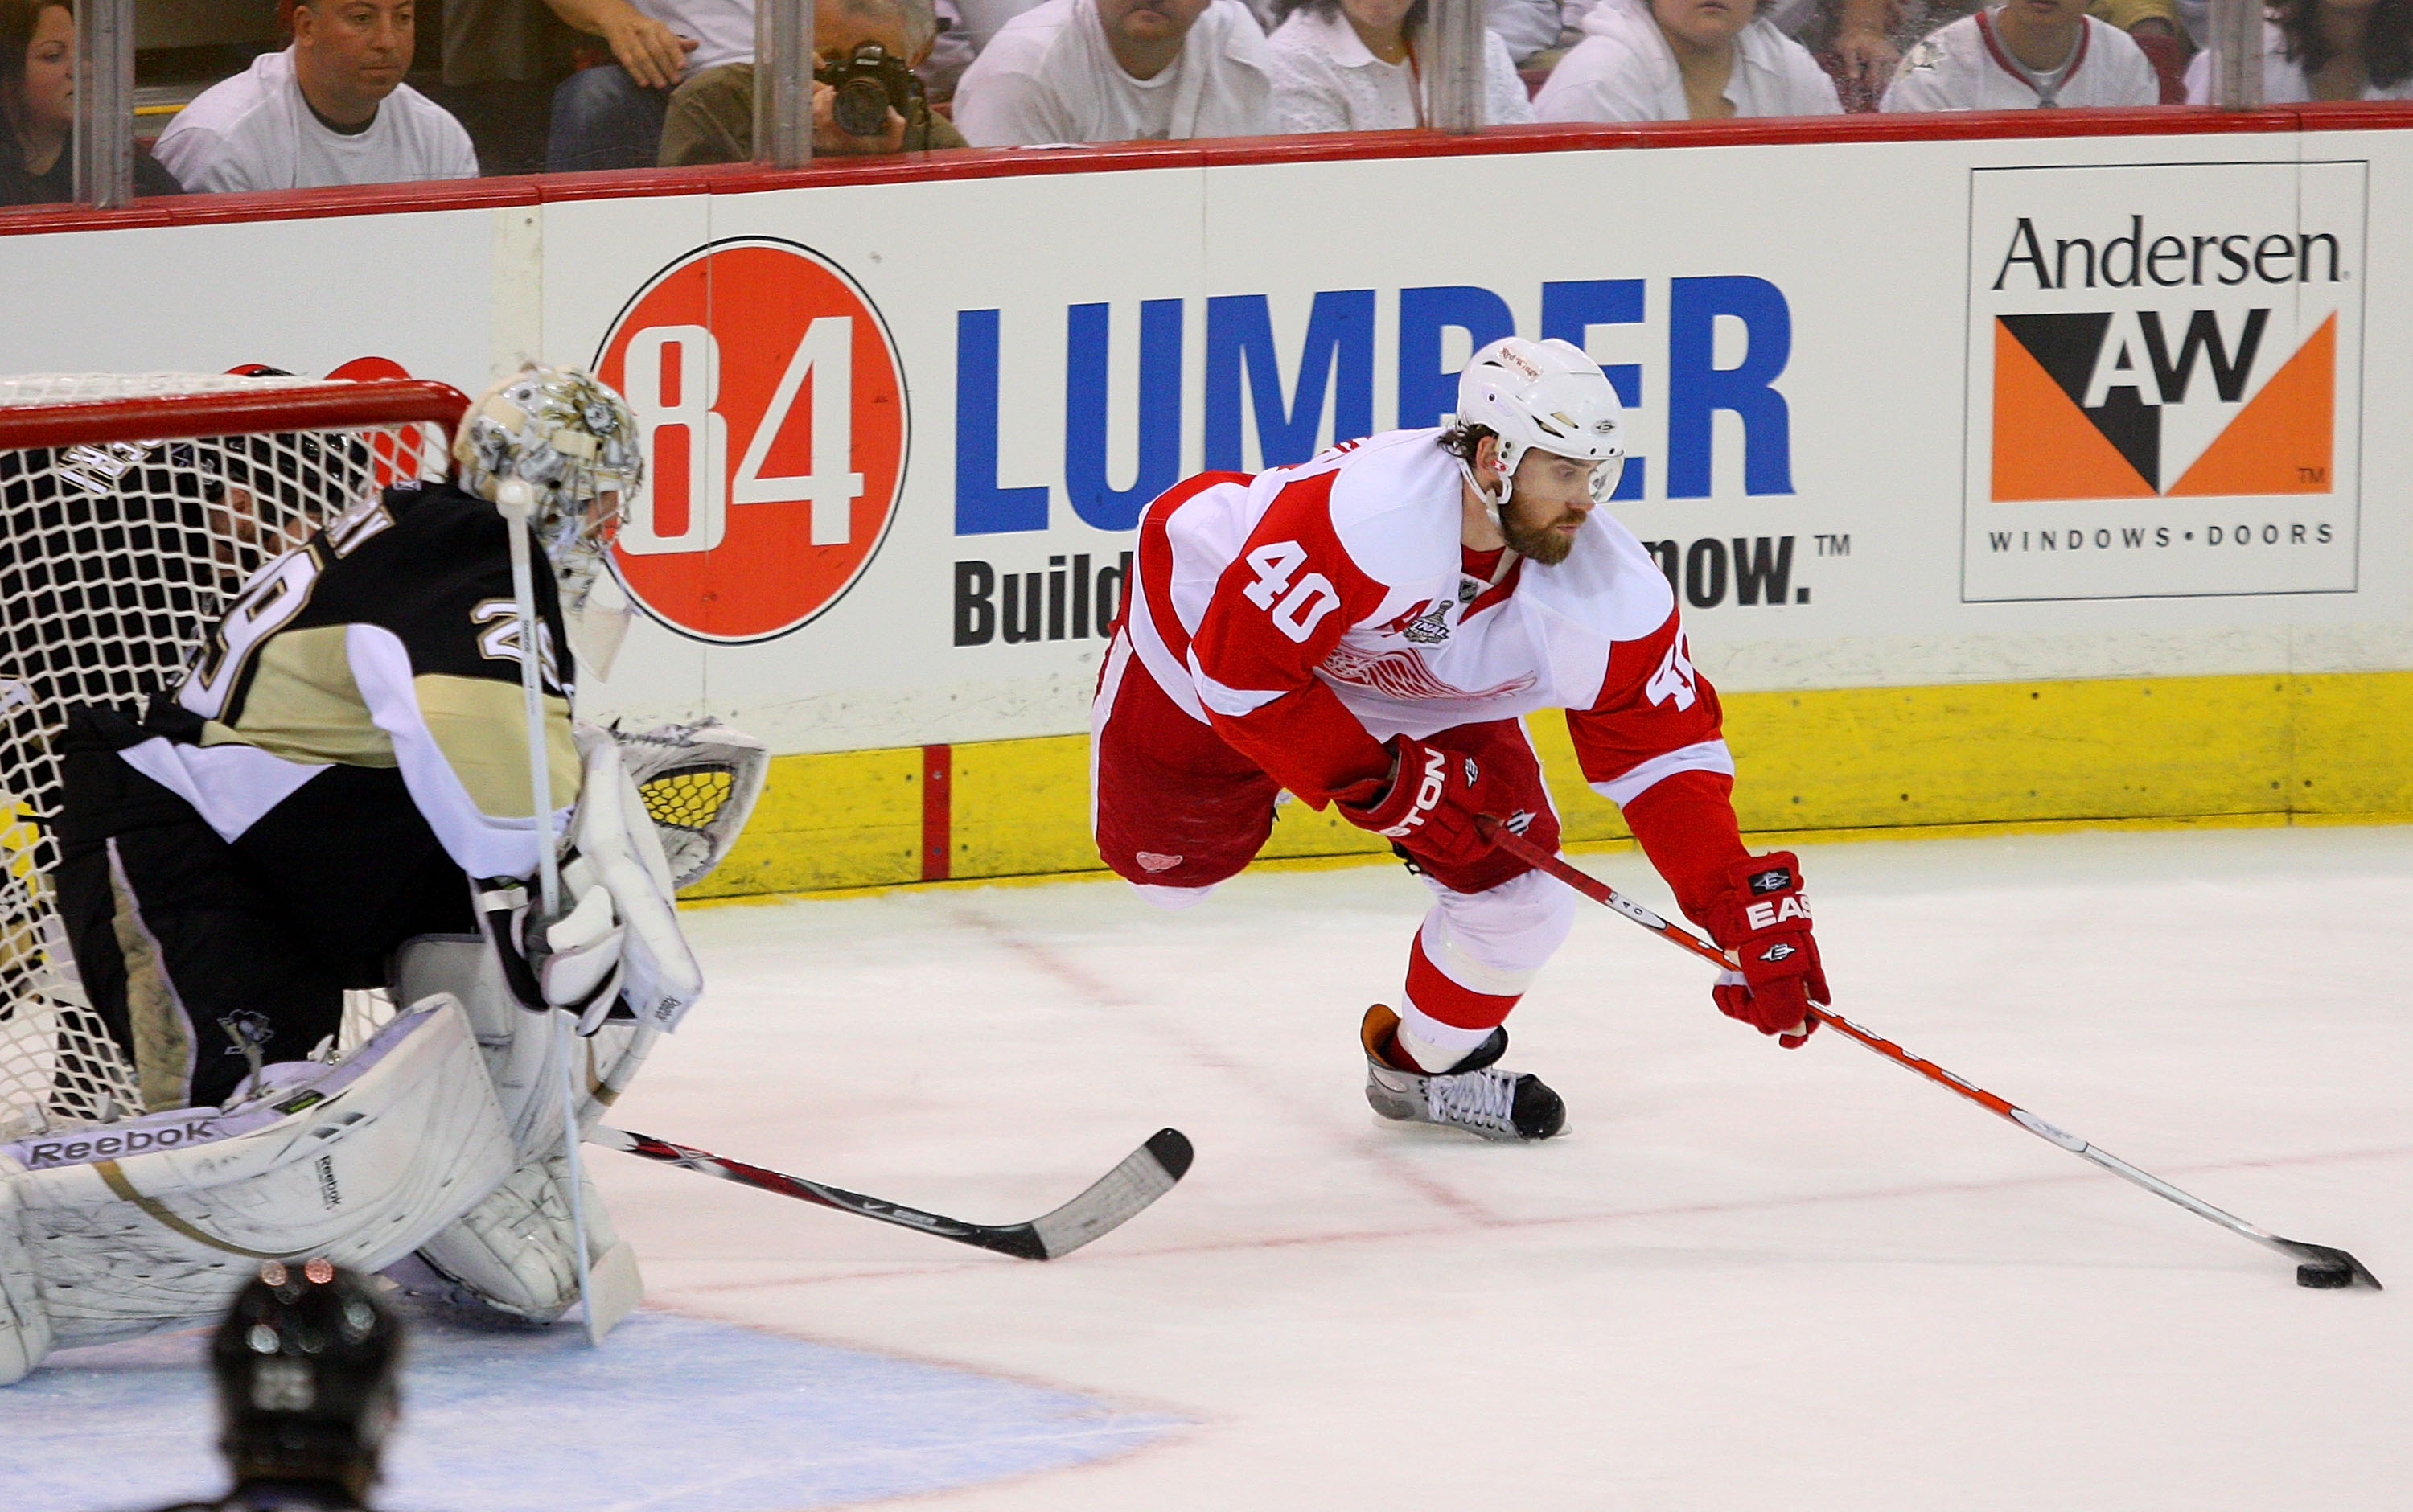 PITTSBURGH - JUNE 02:  Goaltender Marc-Andre Fleury #29 of the Pittsburgh Penguins defends the goal against Nicklas Lidstrom #5 of the Detroit Red Wings during Game Three of the 2009 NHL Stanley Cup Finals on June 2, 2009 at Mellon Arena in Pittsburgh, Pe